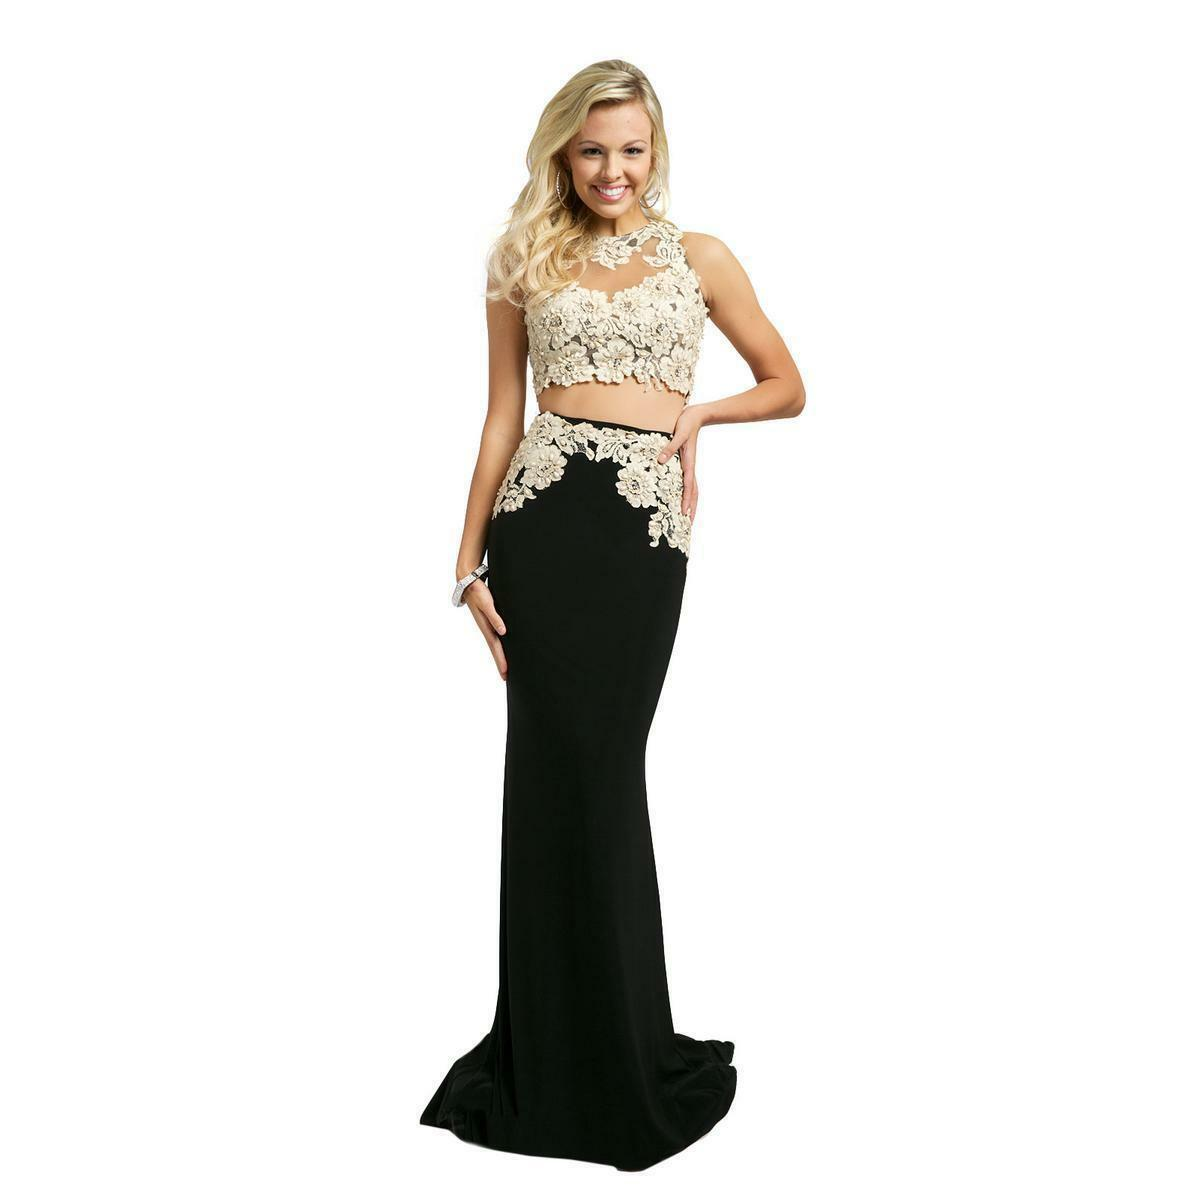 640 NWT TWO PIECE JOVANI PROM PAGEANT FORMAL DRESS GOWN SIZE 6